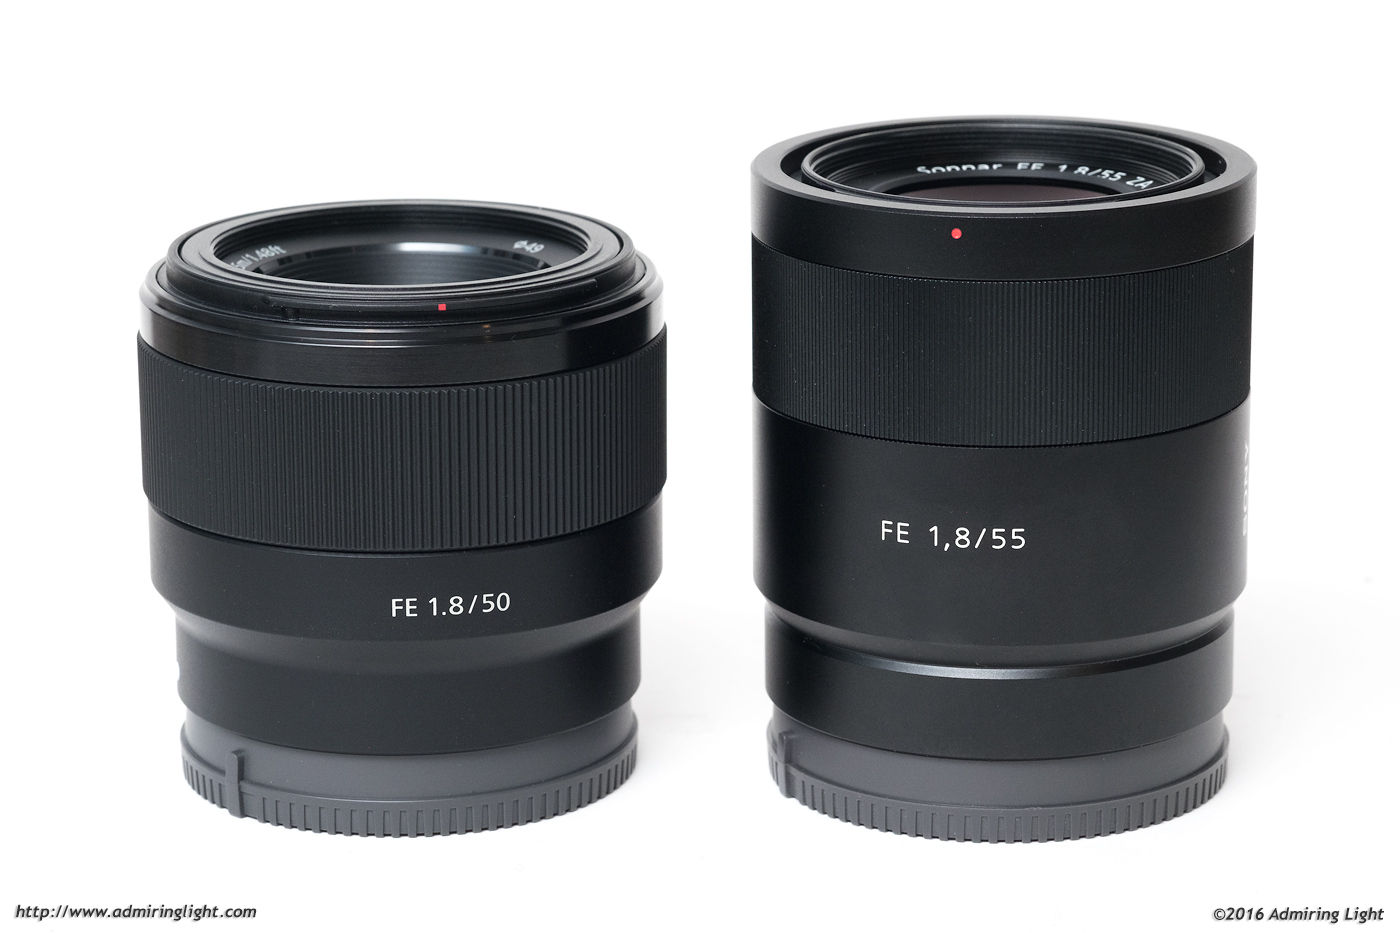 The FE 50mm f/1.8 next to the much more expensive FE 55mm f/1.8